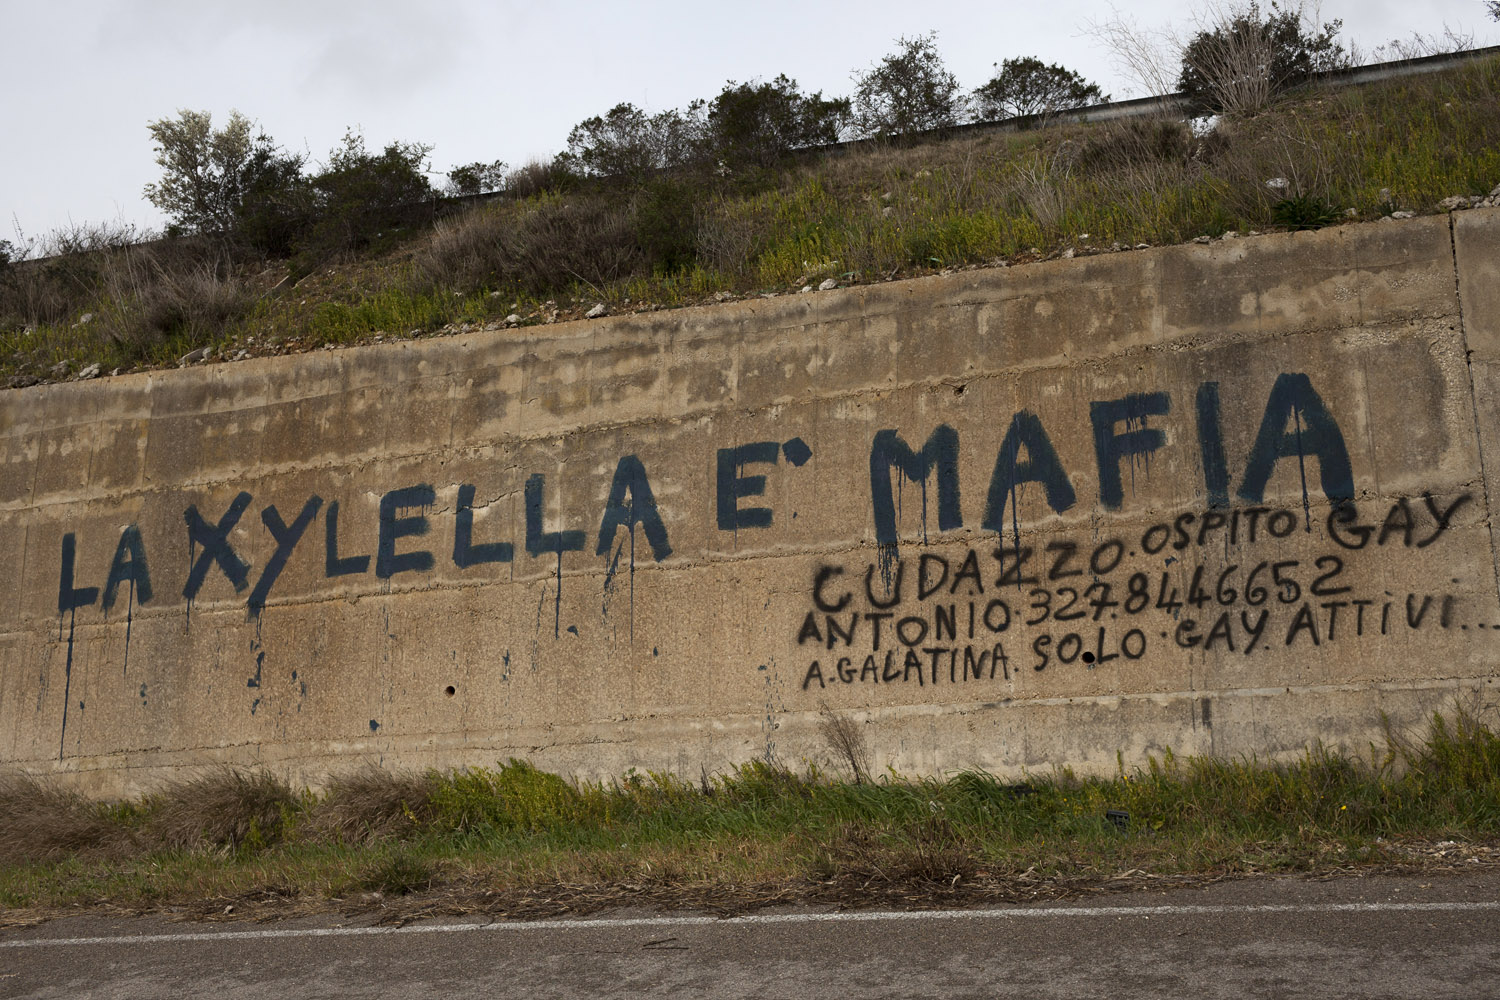 "A graffiti along one of Salento's main roads denounces the entire Xylella affair as ""mafia"". This view of the outbreak as a conspiracy or an outright lie to force a wide-ranging transformation of the region's agriculture, landscape and identity is very common in Puglia, and has led to much oppositions to the authorities' efforts to contain it. (2017)"